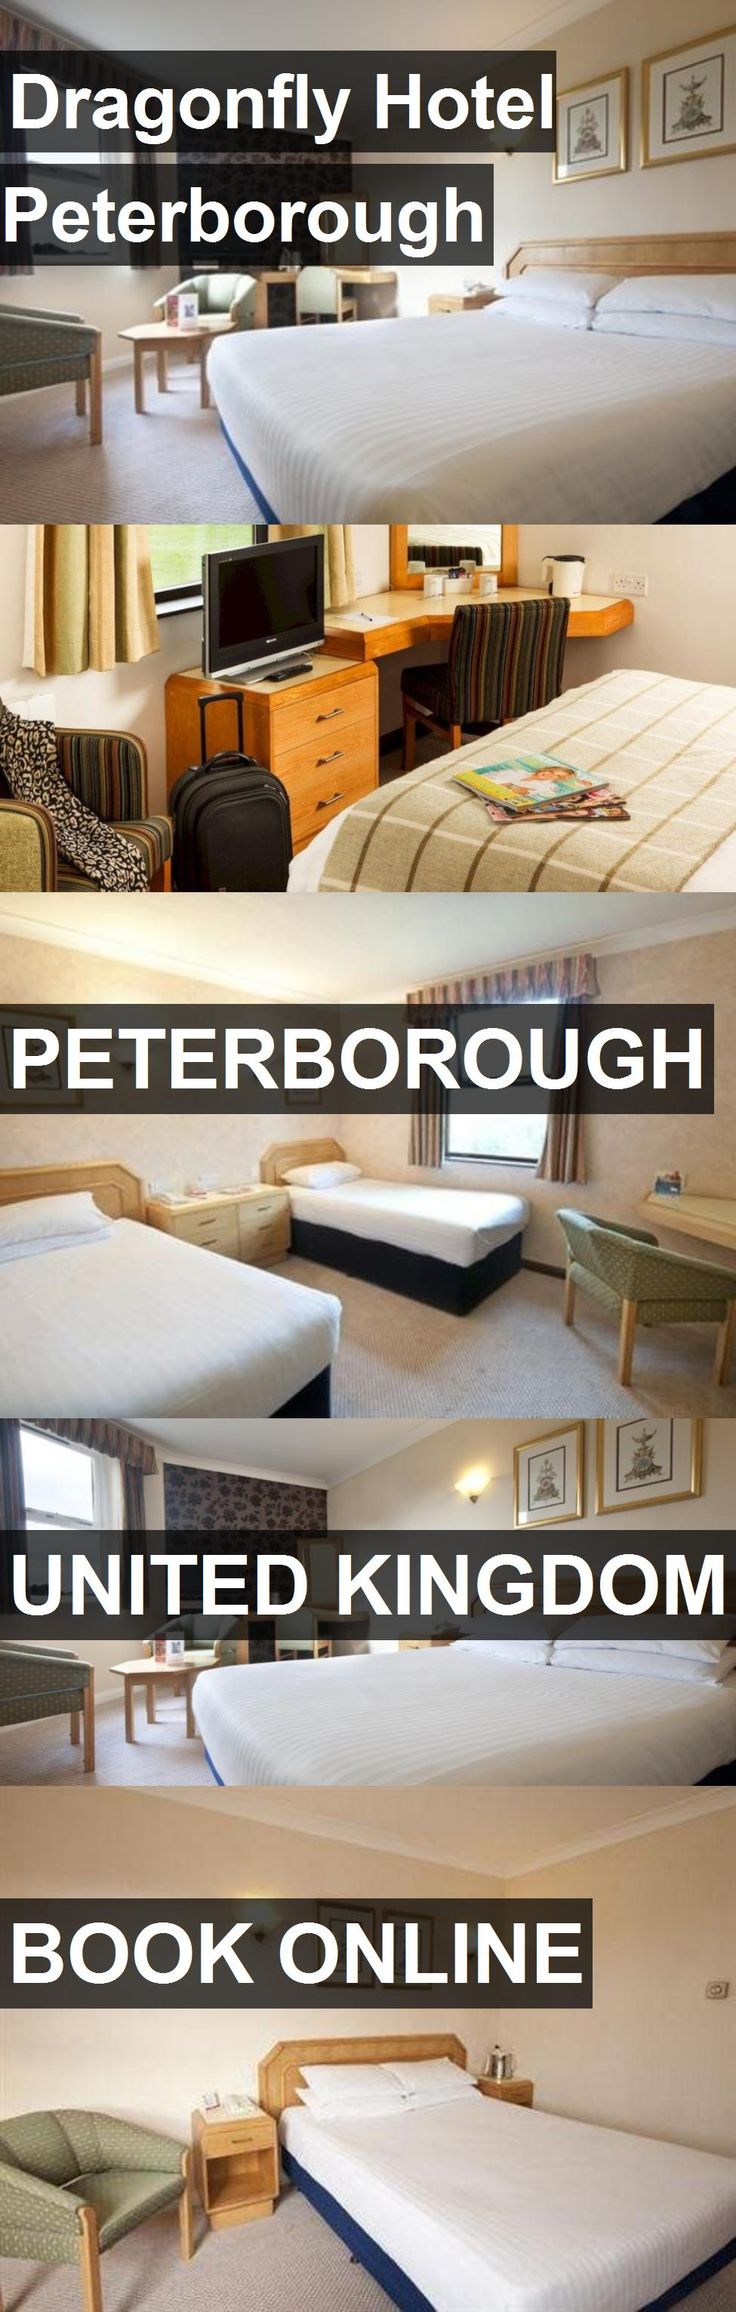 Hotel Dragonfly Hotel Peterborough in Peterborough, United Kingdom. For more information, photos, reviews and best prices please follow the link. #UnitedKingdom #Peterborough #DragonflyHotelPeterborough #hotel #travel #vacation